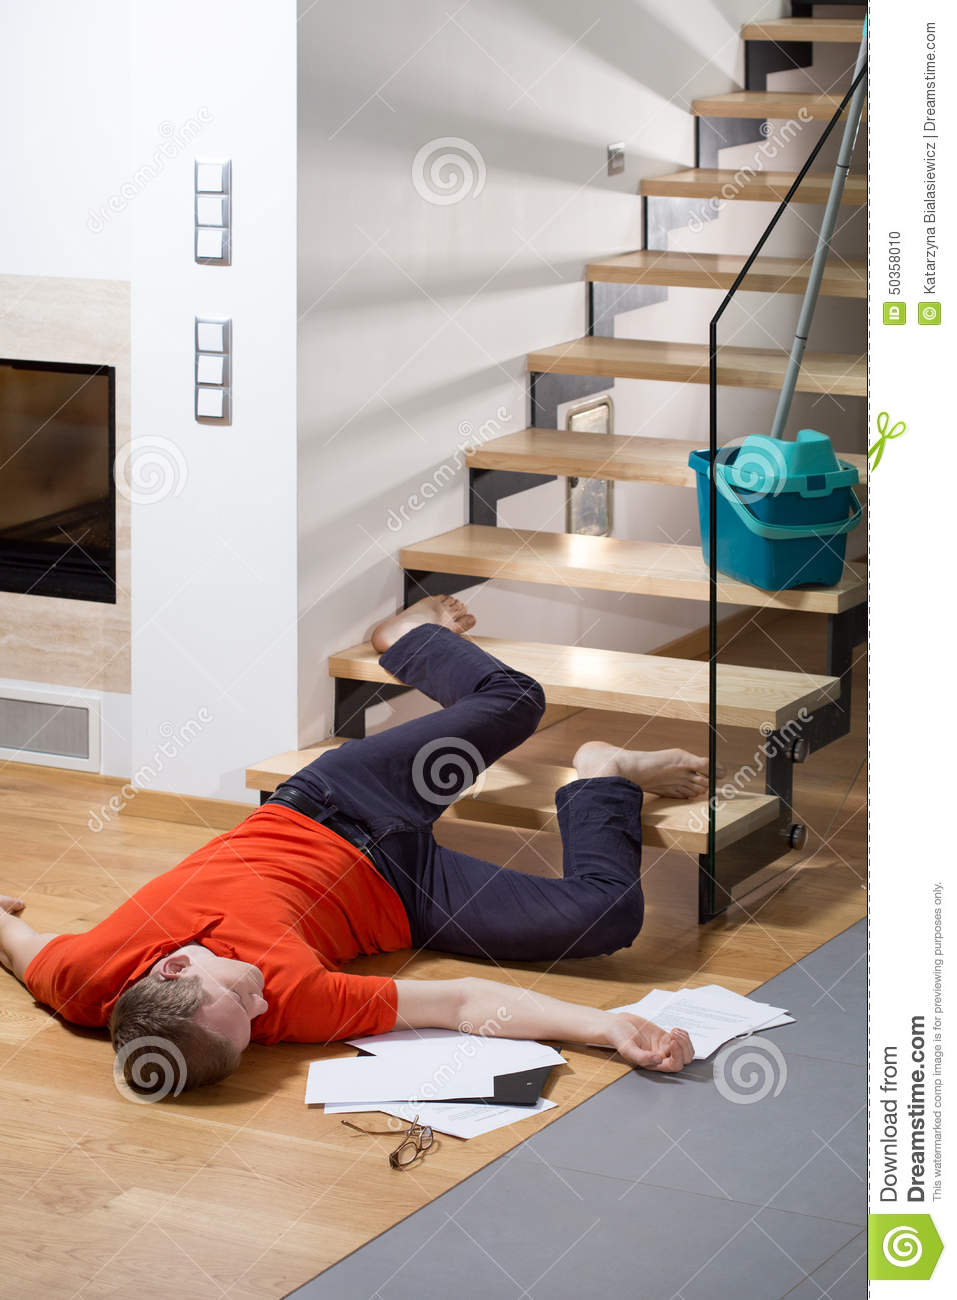 Injured man lying on the floor stock photo image 50358010 for Down to the floor